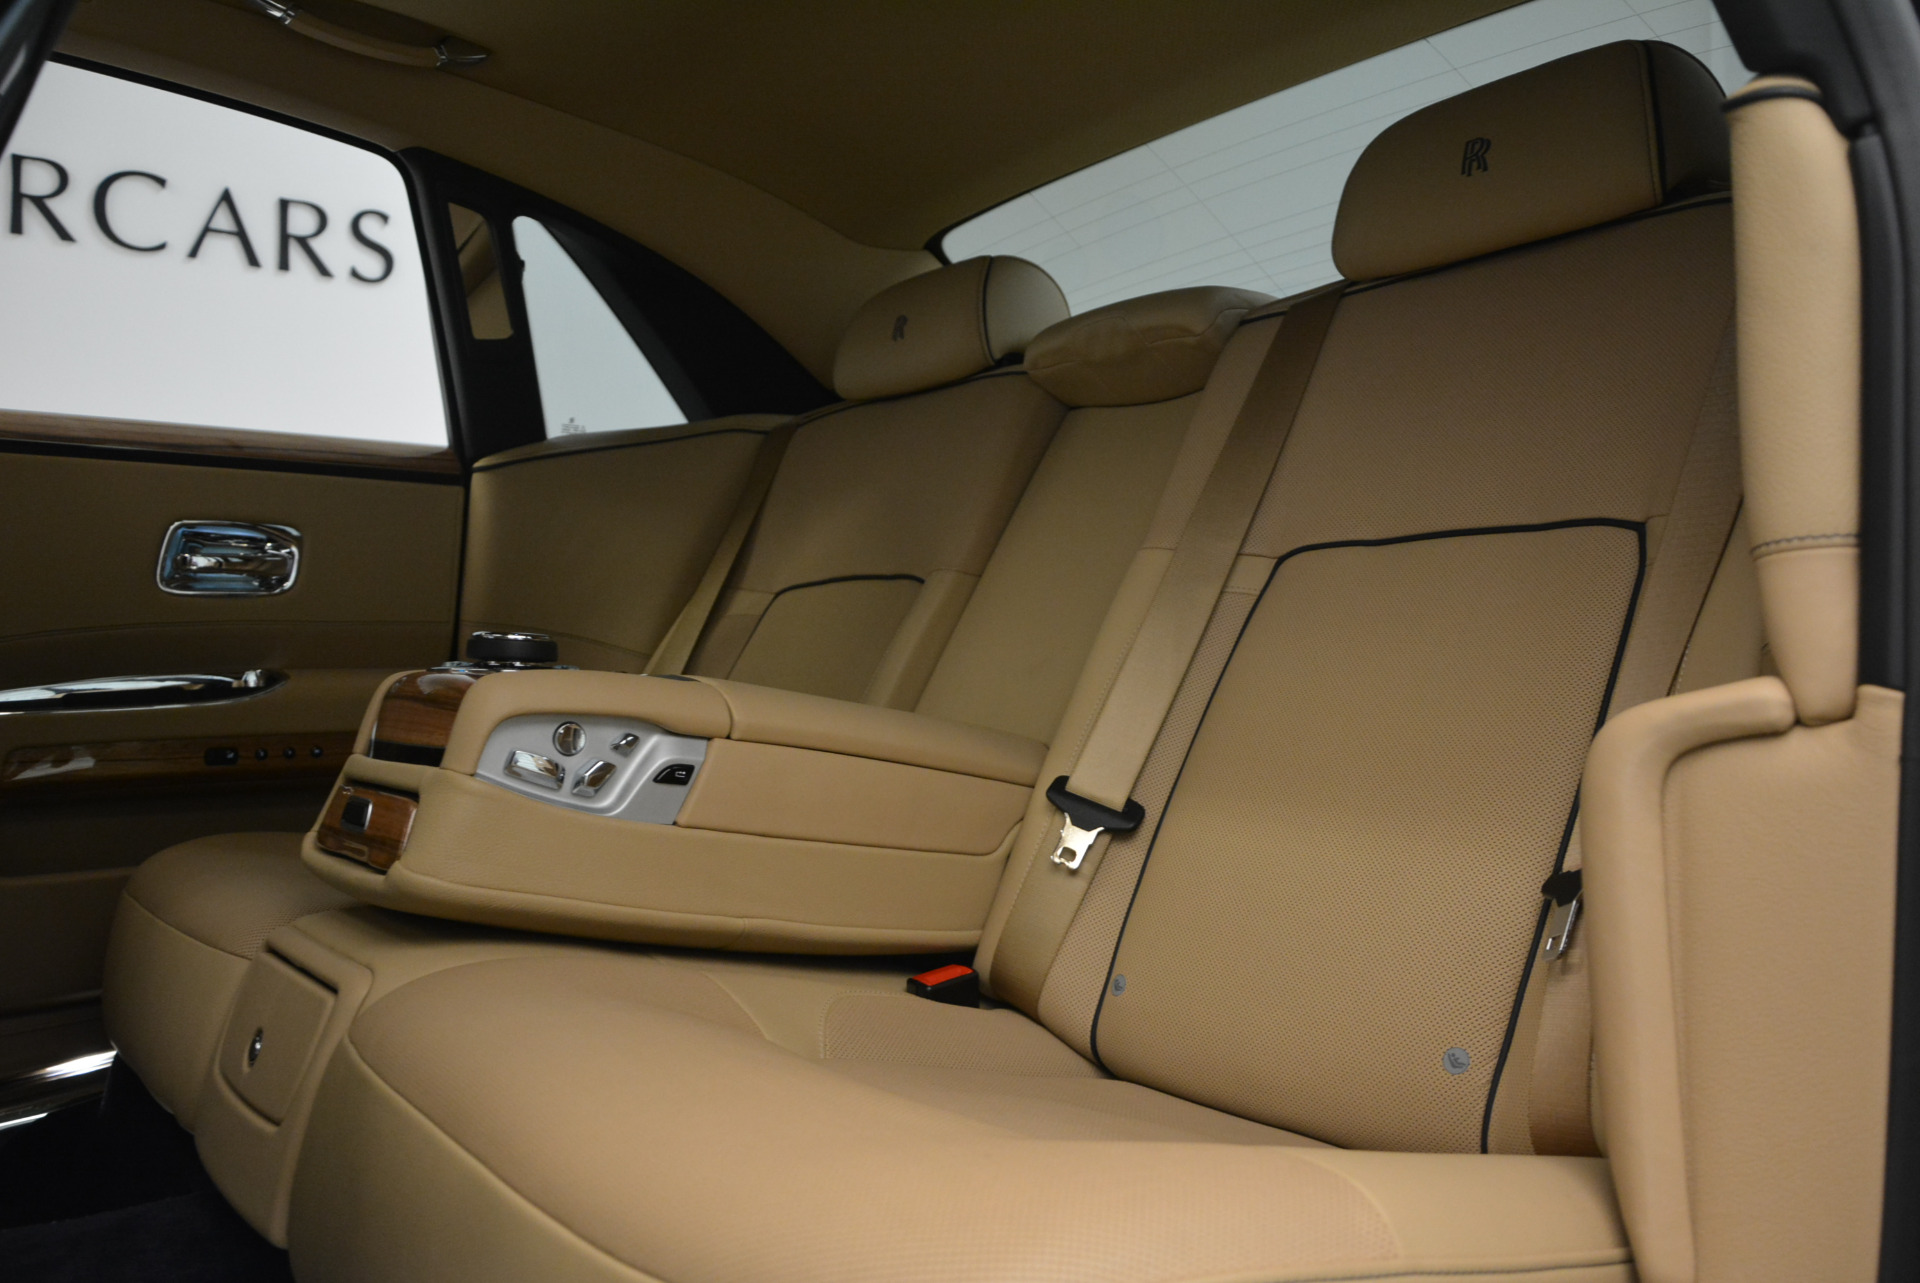 Used 2014 Rolls-Royce Ghost V-Spec For Sale In Westport, CT 858_p30